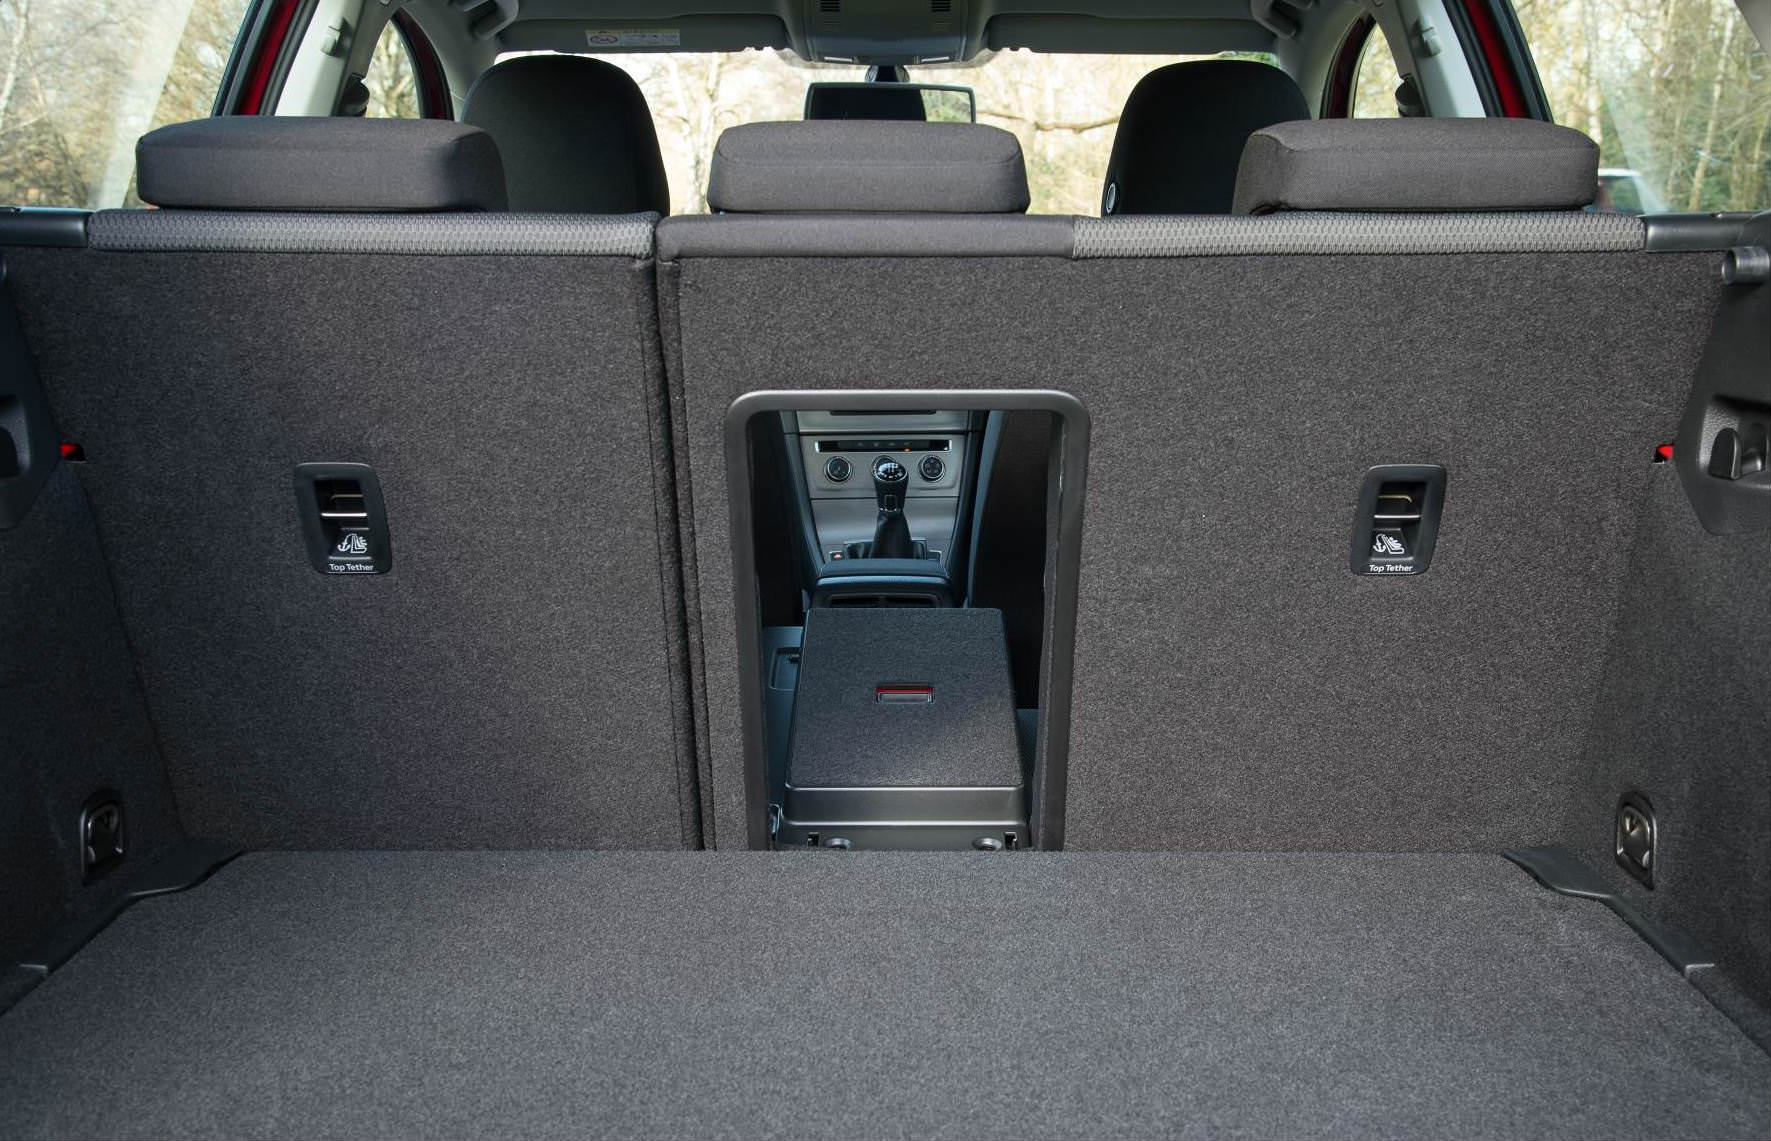 Volkswagen Golf mk7 boot space is 380 litres